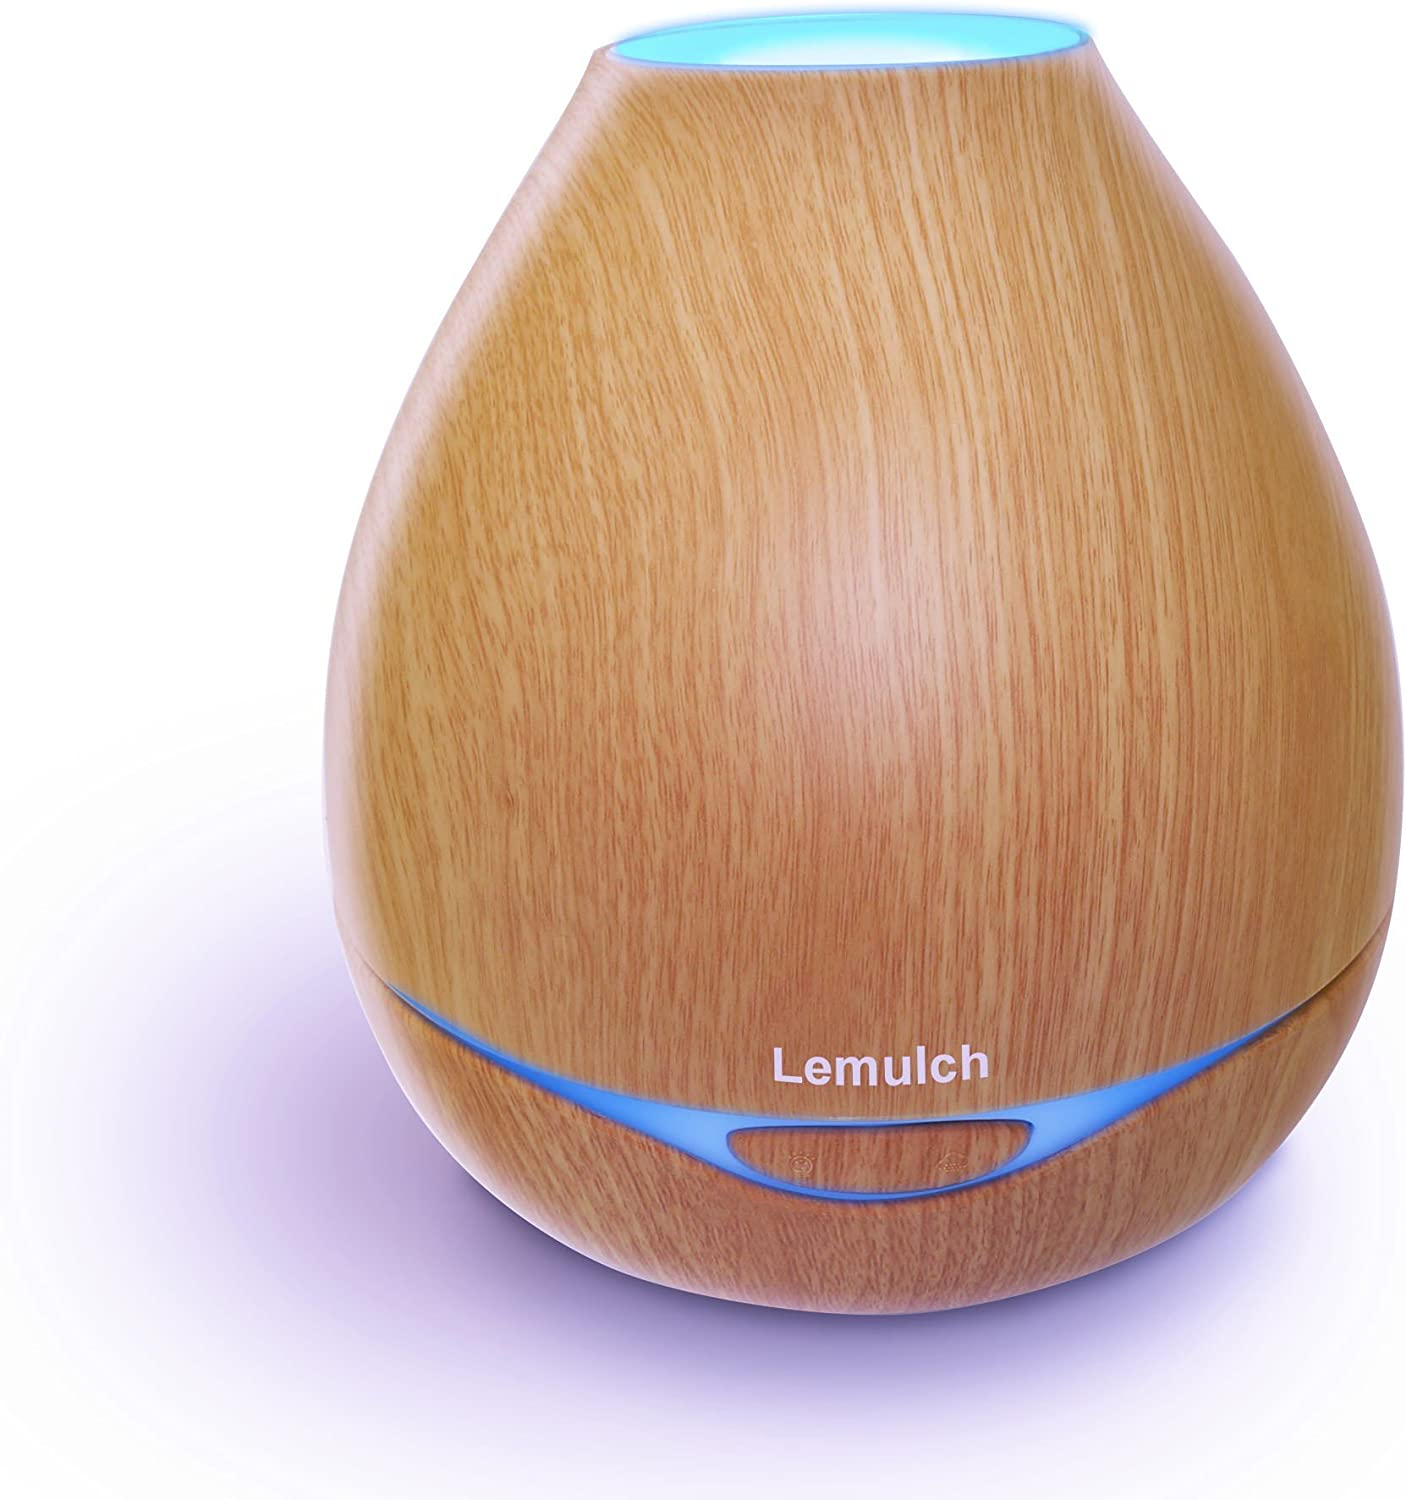 Lemulch 300ml Upgrade Tucson Mall Aromatherapy Mail order cheap Diffuser Essential Oil Yoga D